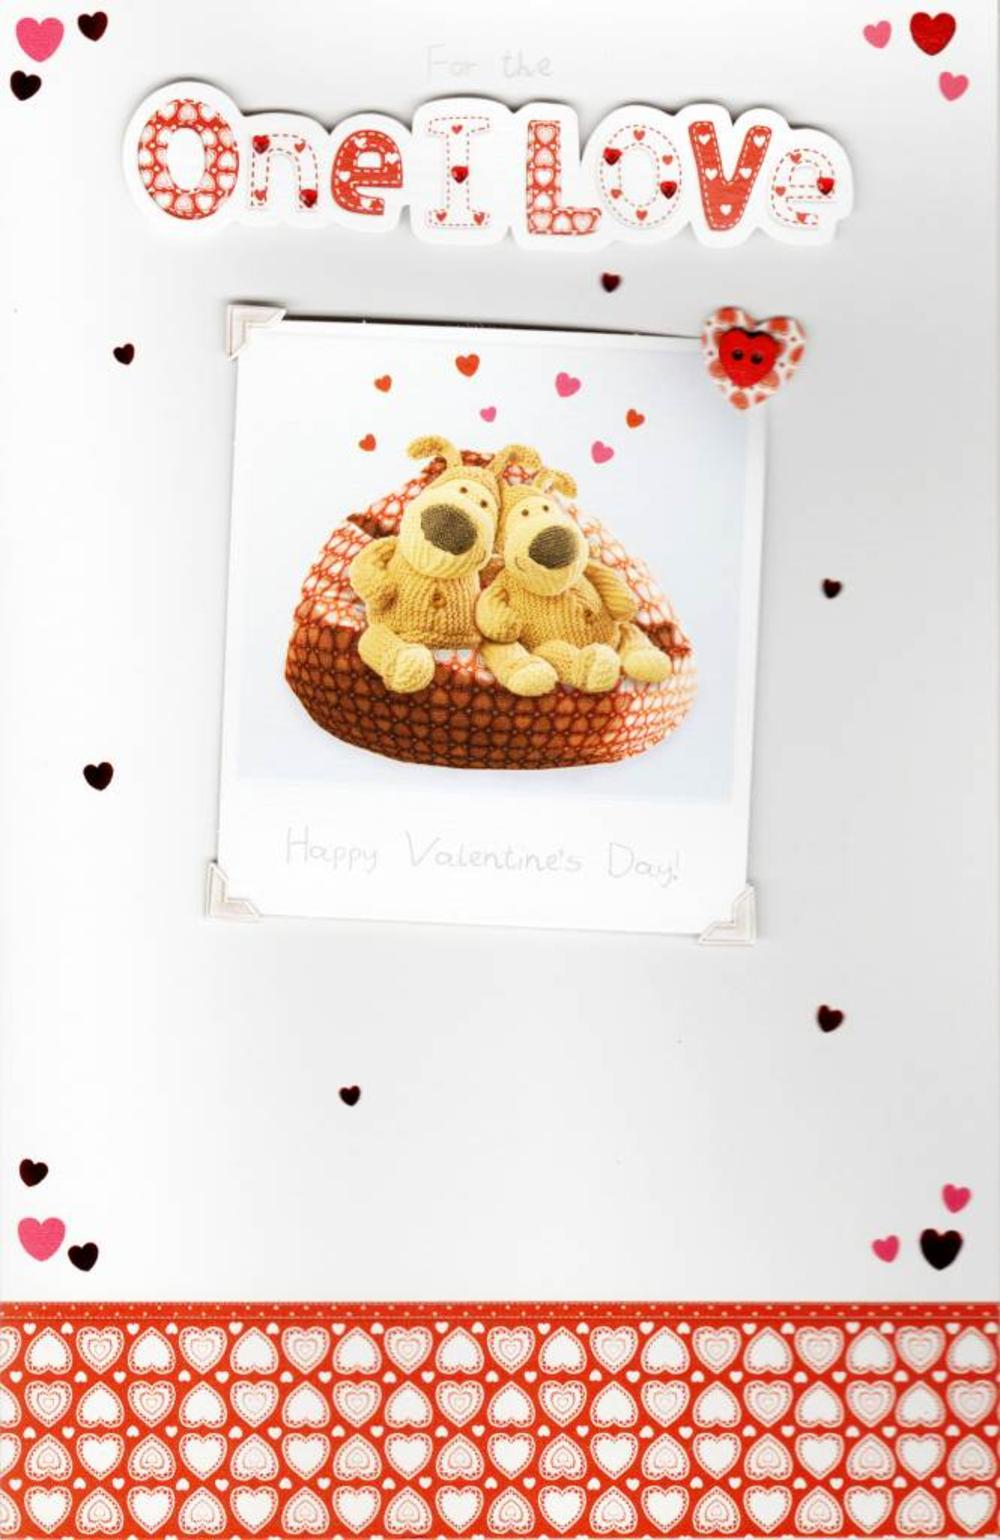 For The One I Love Boofle Valentine's Day Card